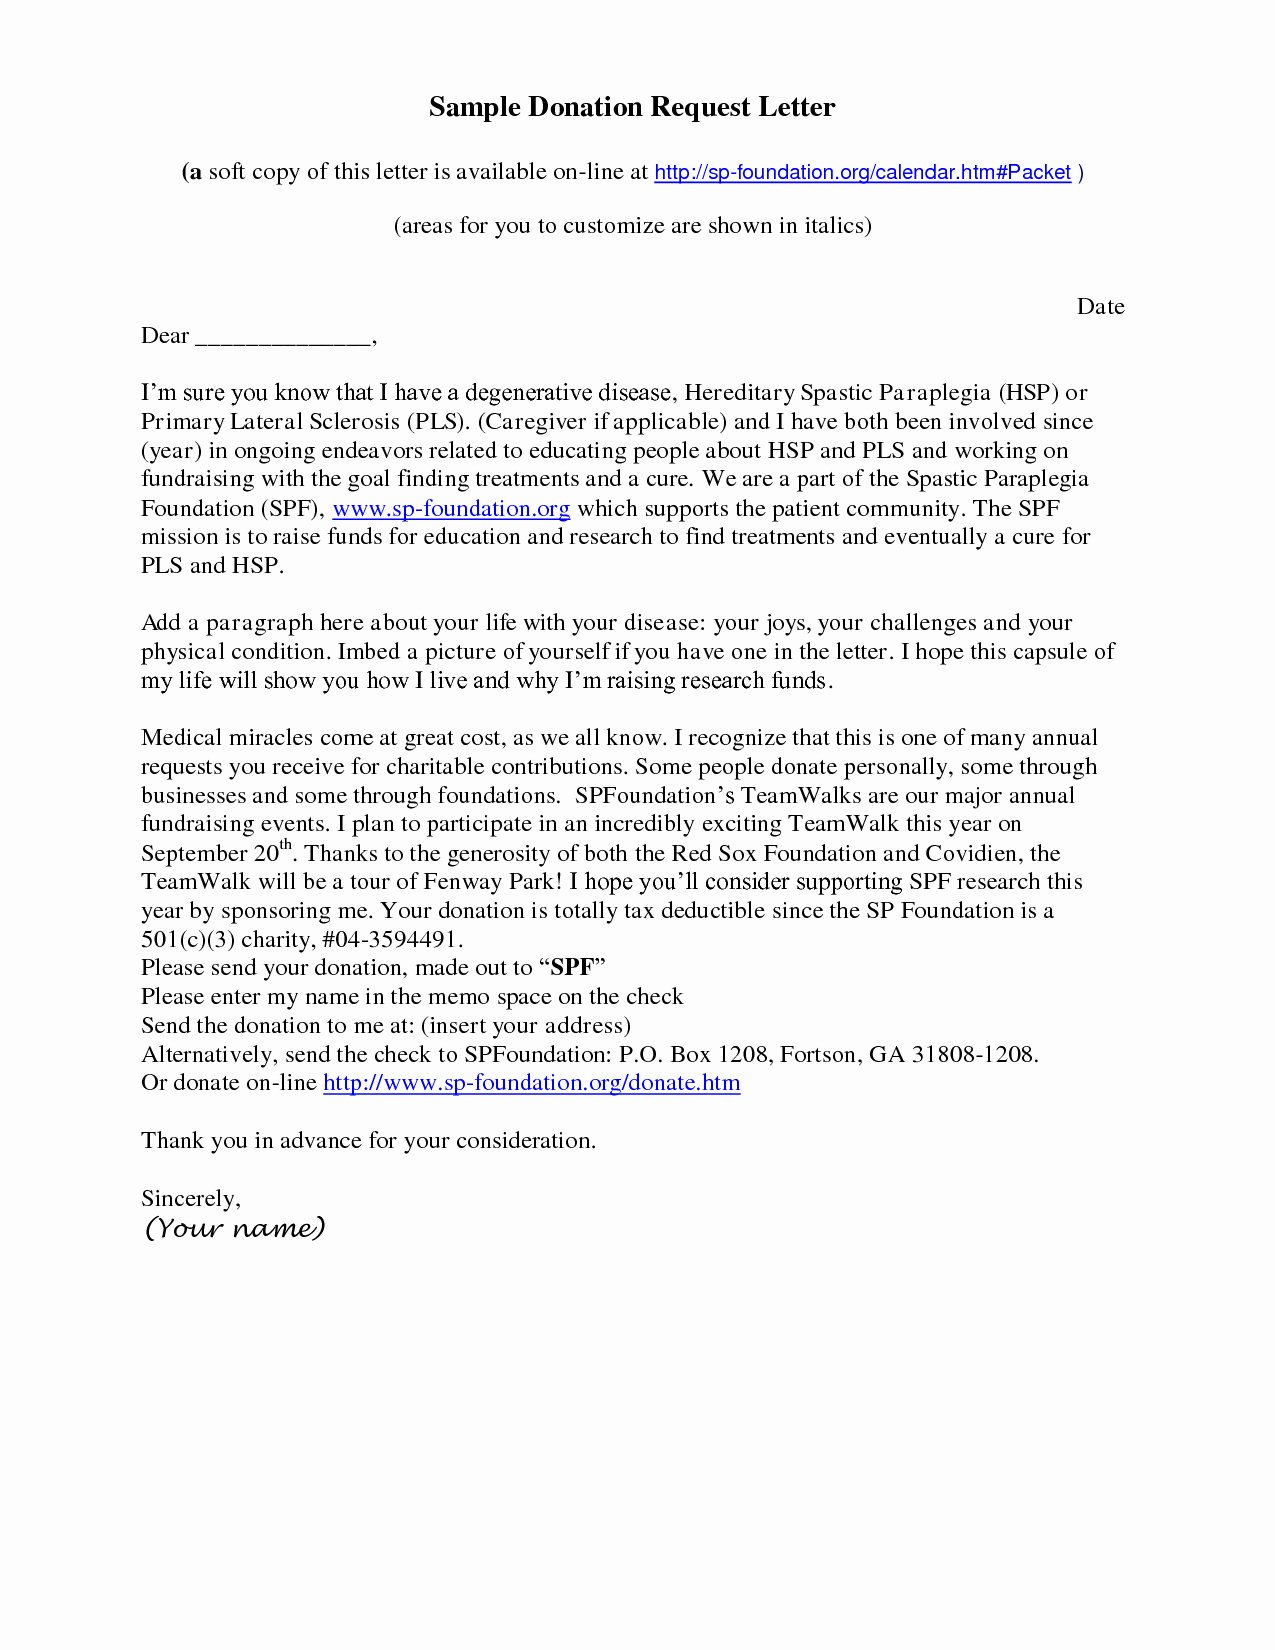 Non Profit Donation Letter Template Unique Donation Letter Template for Non Profit organization